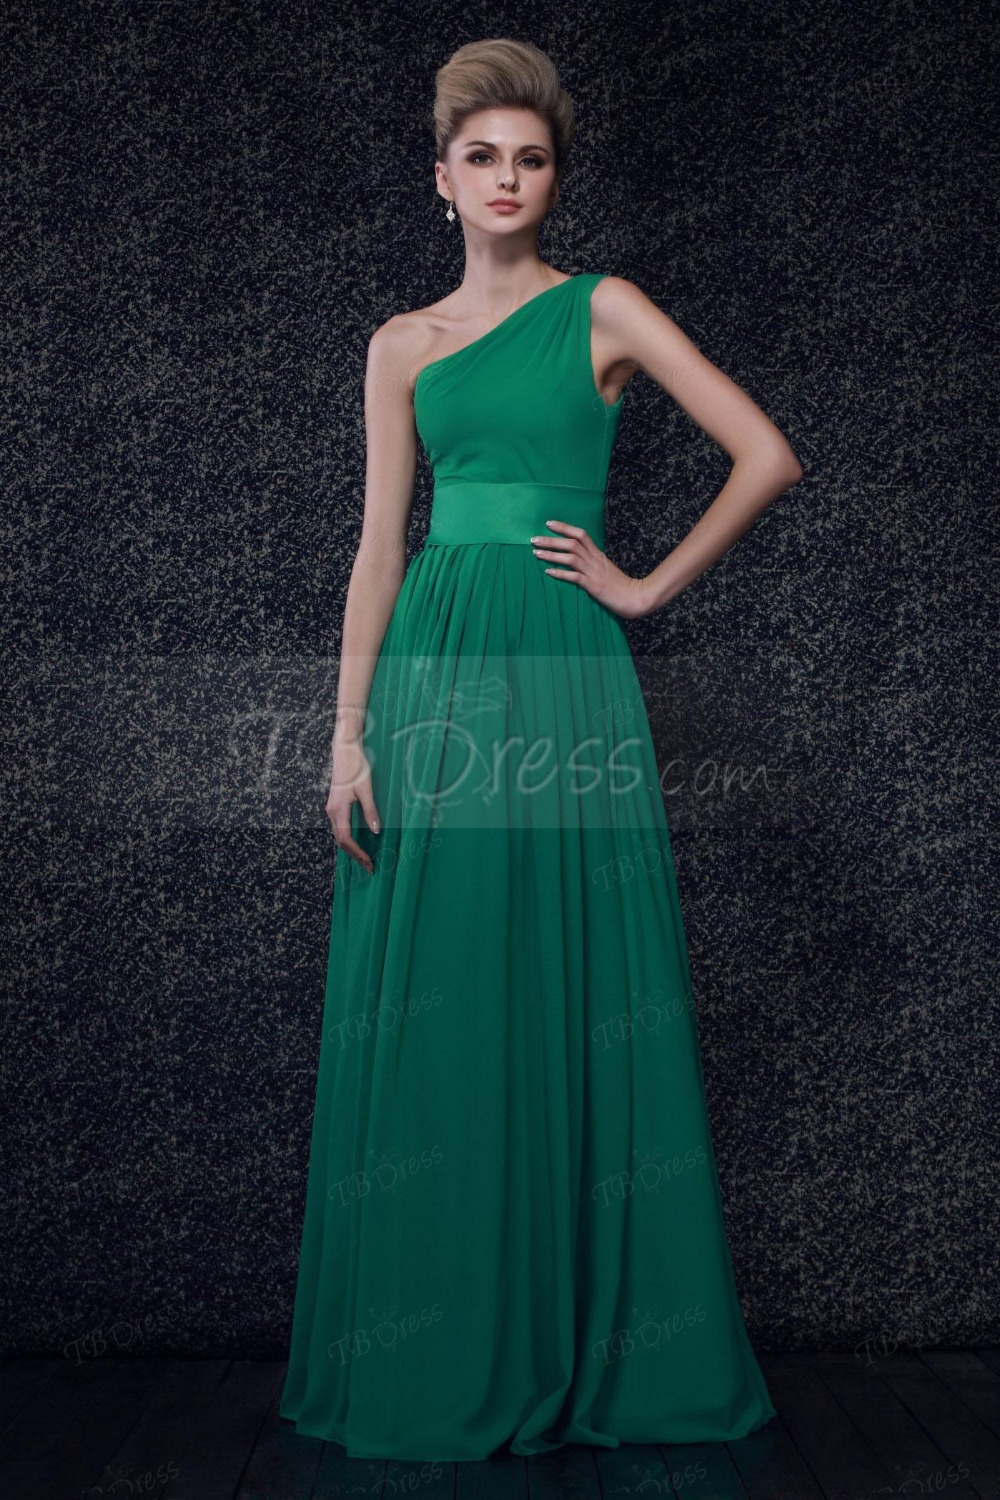 2015 sweetheart pleats a line one shoulder floor length chiffon 2015 sweetheart pleats a line one shoulder floor length chiffon emerald green bridesmaid dress long wedding party dress zh856 in bridesmaid dresses from ombrellifo Choice Image